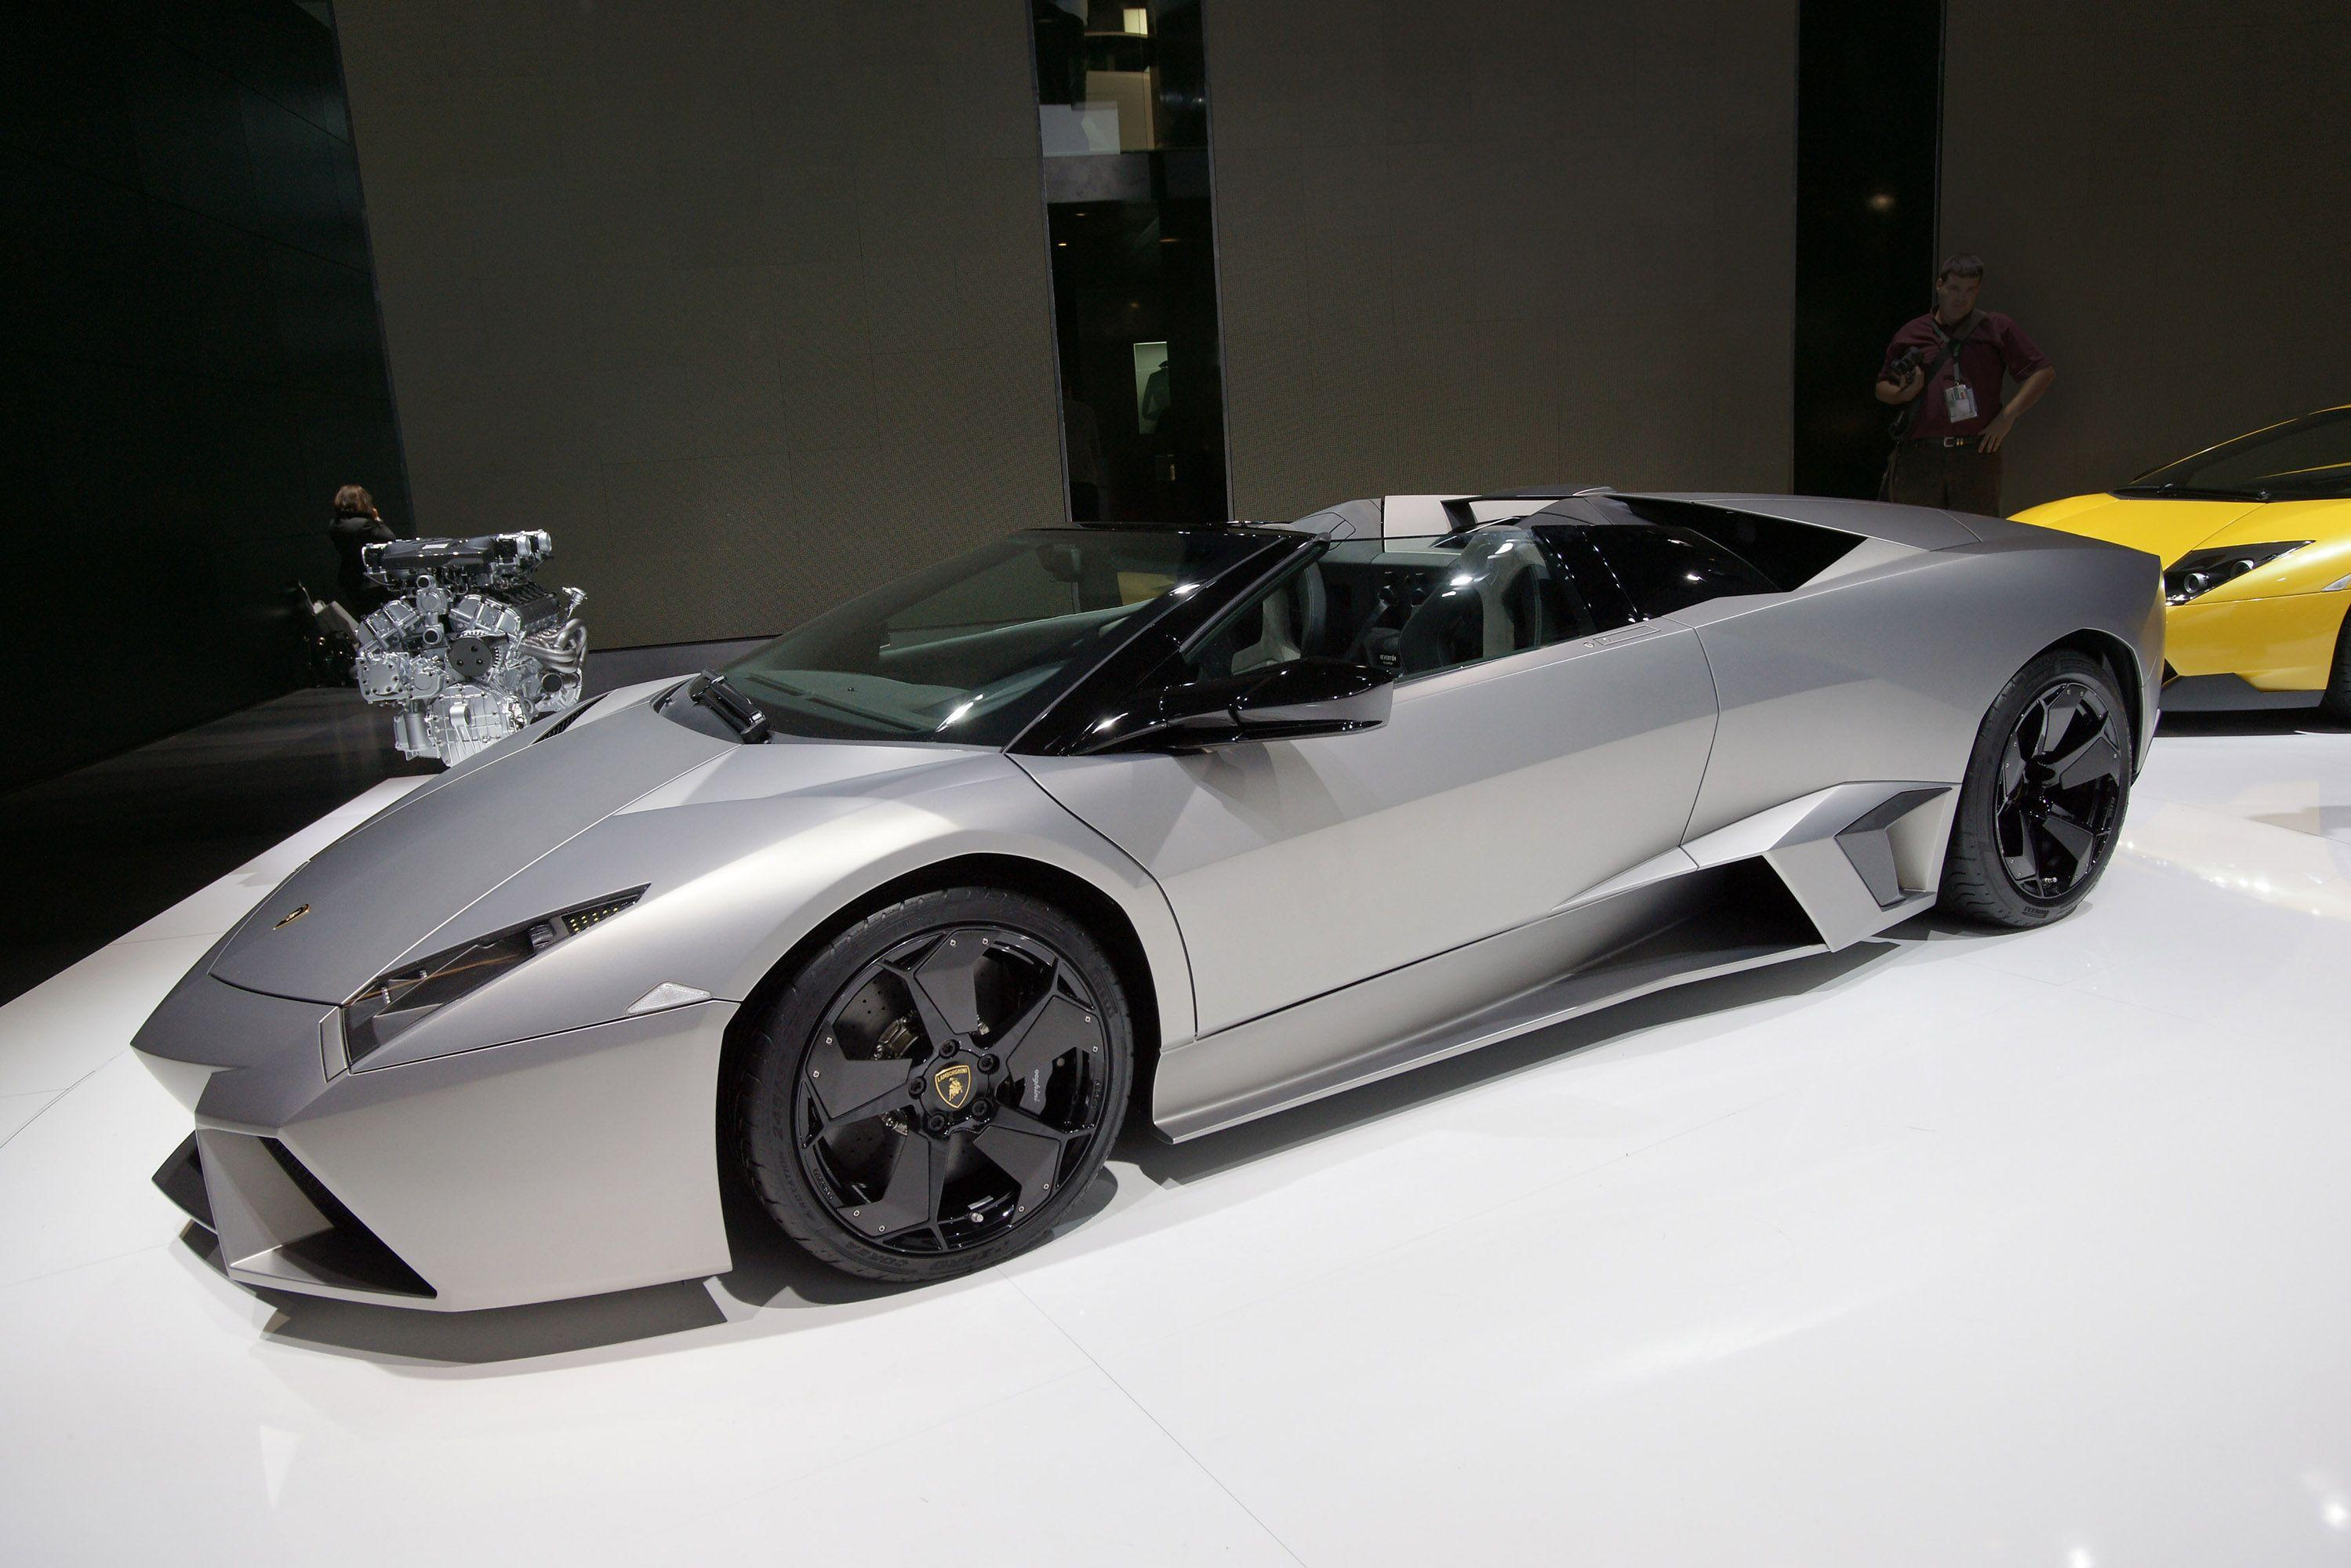 Lamborghini Reventon Roadster Wallpapers Wallpaper Cave